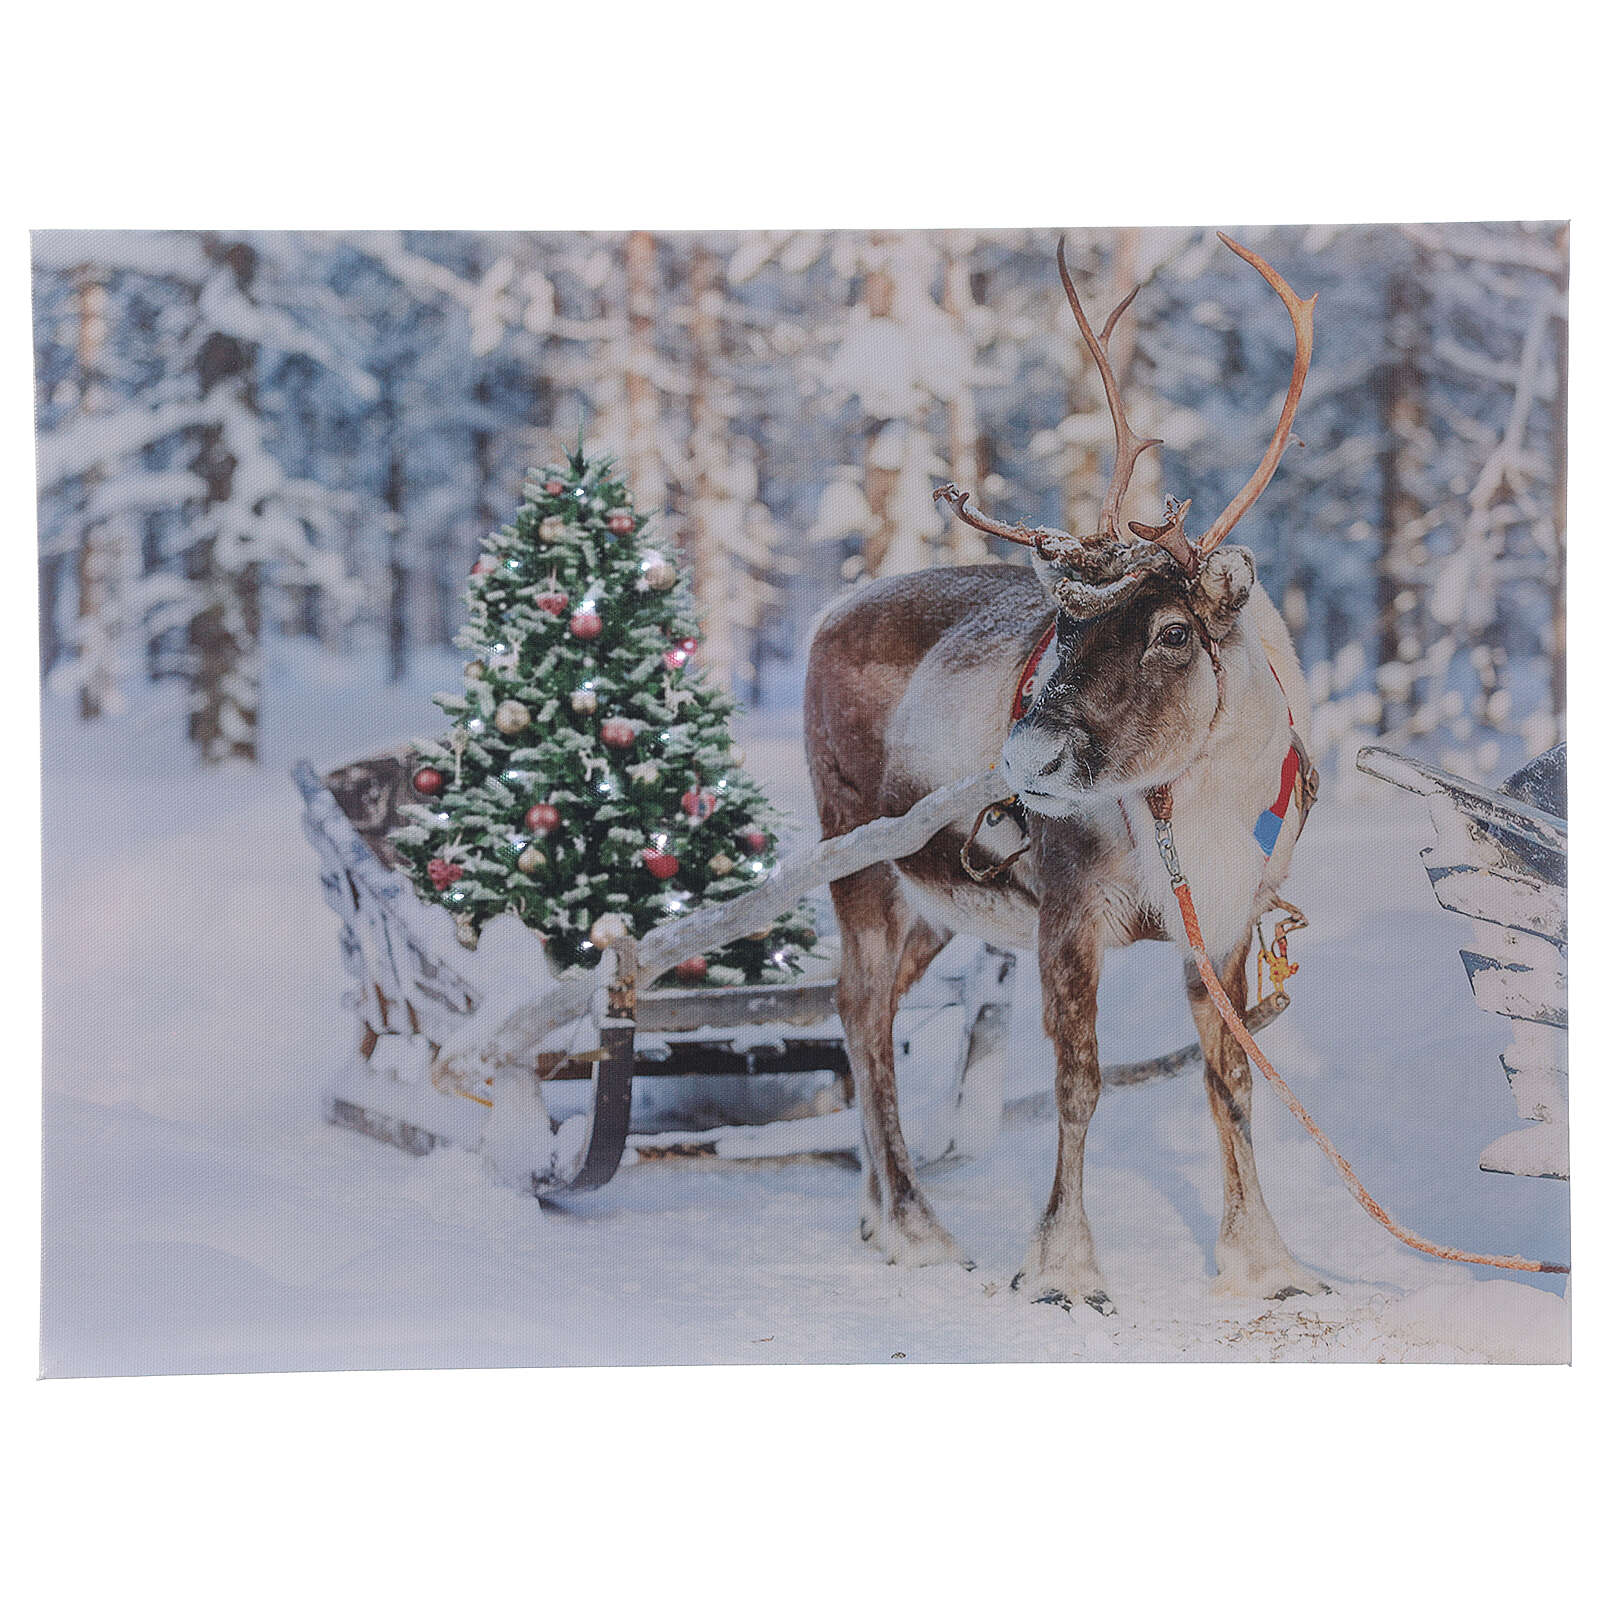 Lighted Christmas picture reindeer tree fiber optic 30x40 cm 3